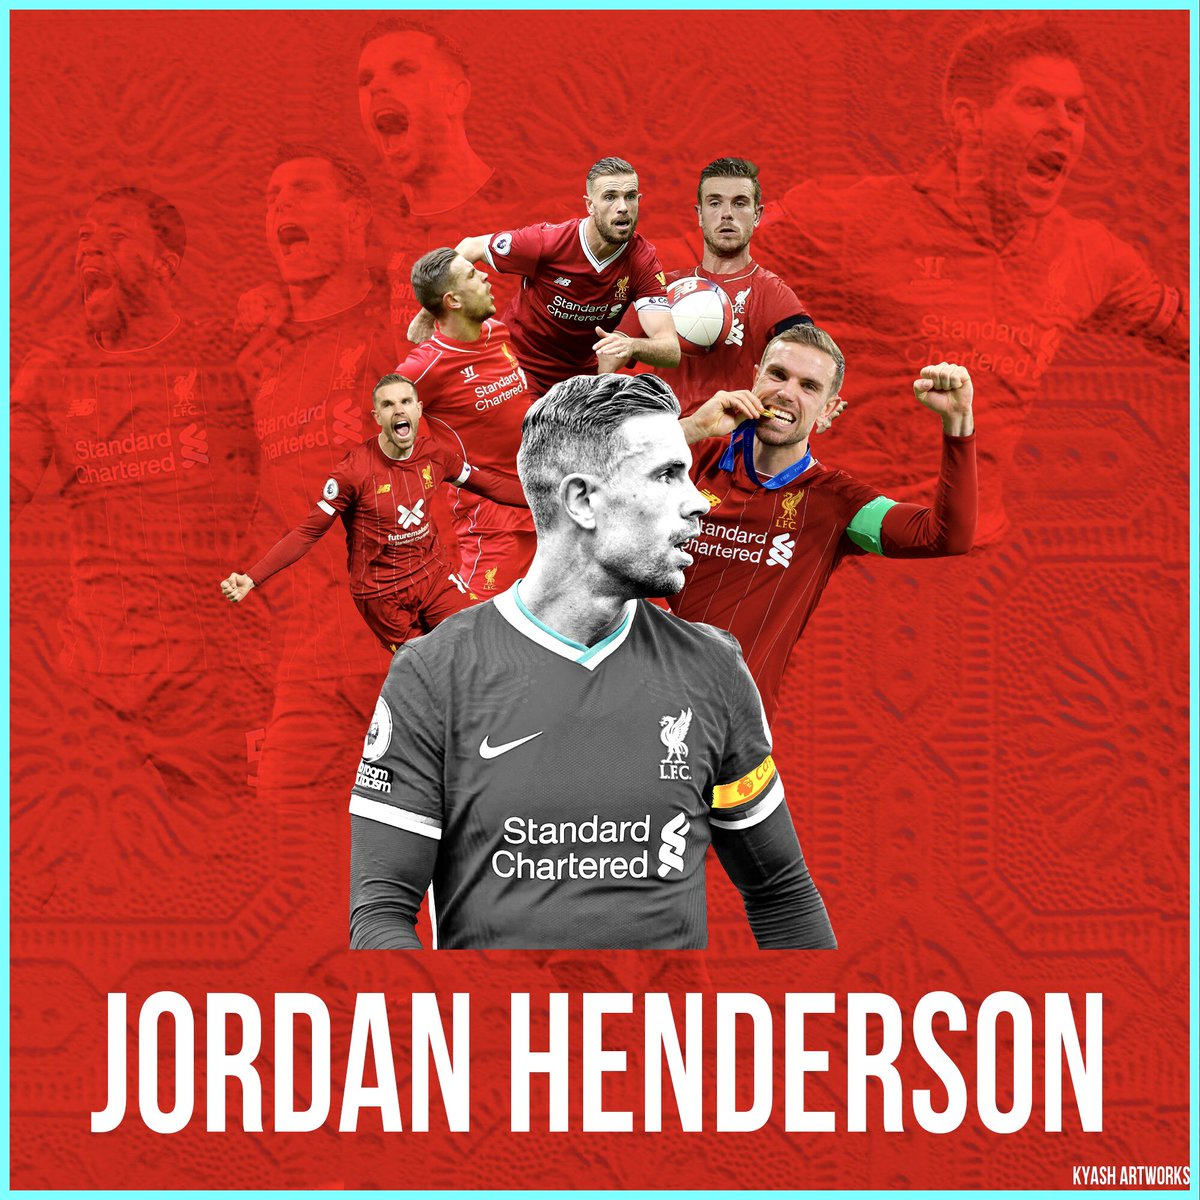 The best successor I could have ever asked for to the greatest captain in Liverpool History! JH14  🔴⚪️JORDAN HENDERSON! #jordanhenderson #hendo #henderson #liverpool #lfc #ajaxvsliverpool #afxvslfc #stevengerrard #gerrard https://t.co/MmkUmr0o5c